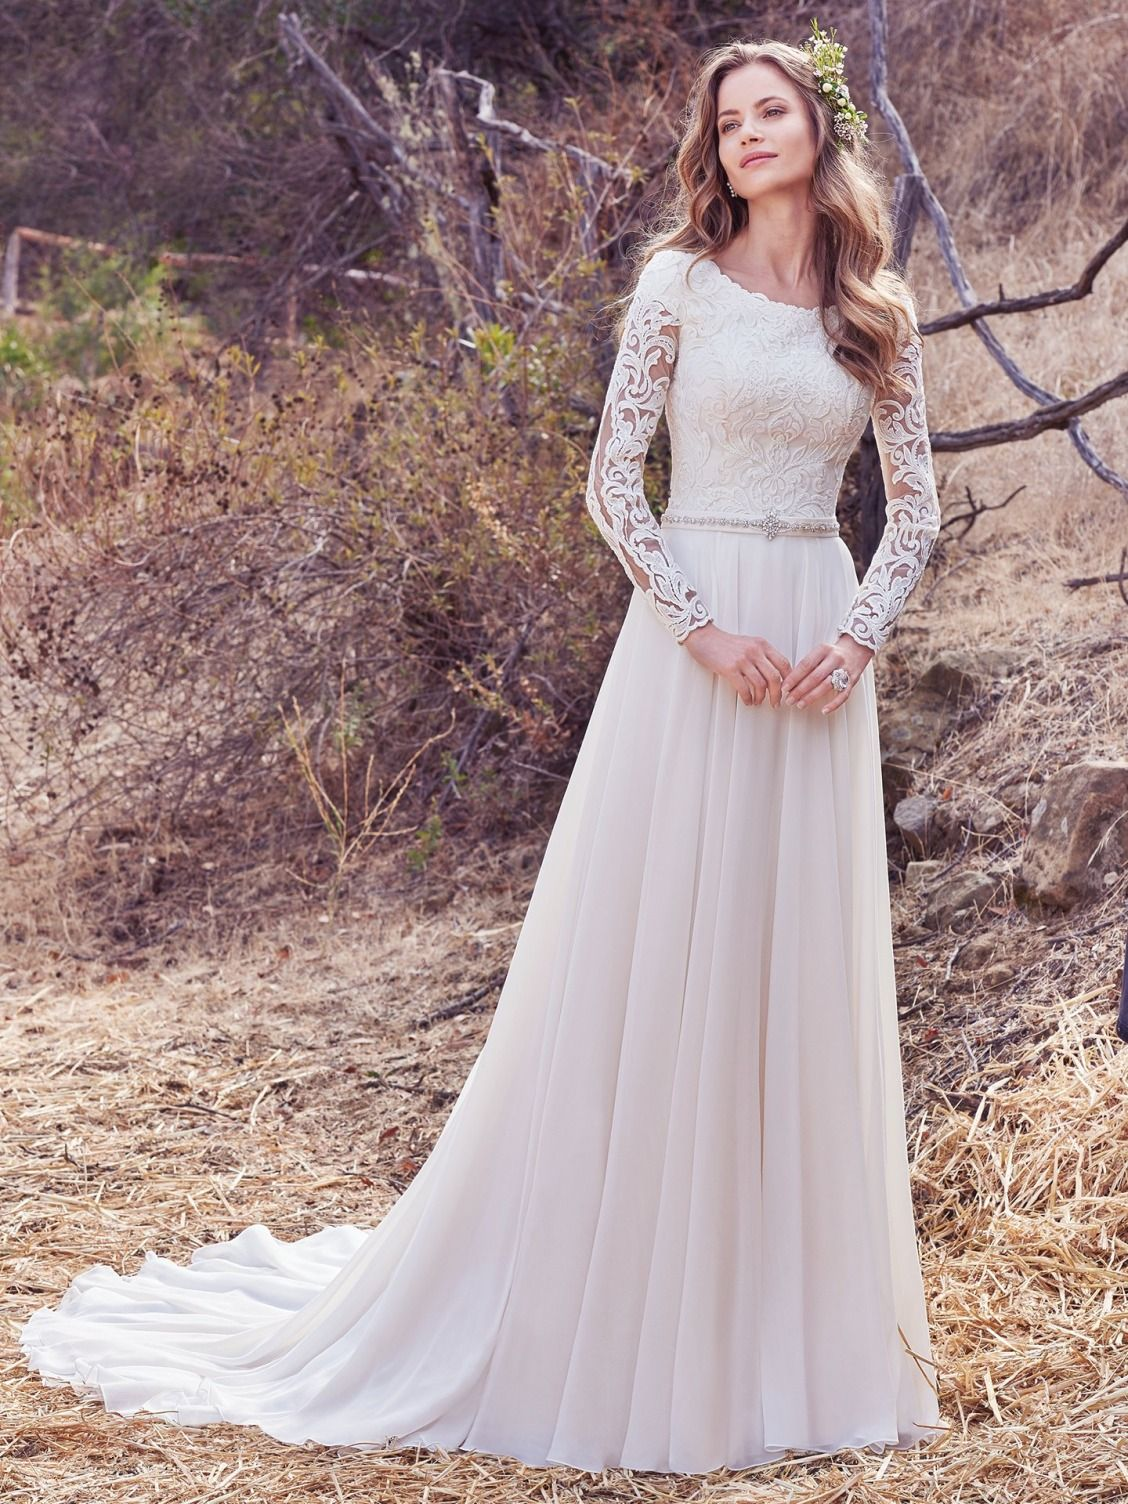 f2669c272cd87 ... This Aurora Chiffon A-line wedding dress features a lace bodice with  illusion long-sleeves, accented in lace appliqués, over modest cap-sleeves.